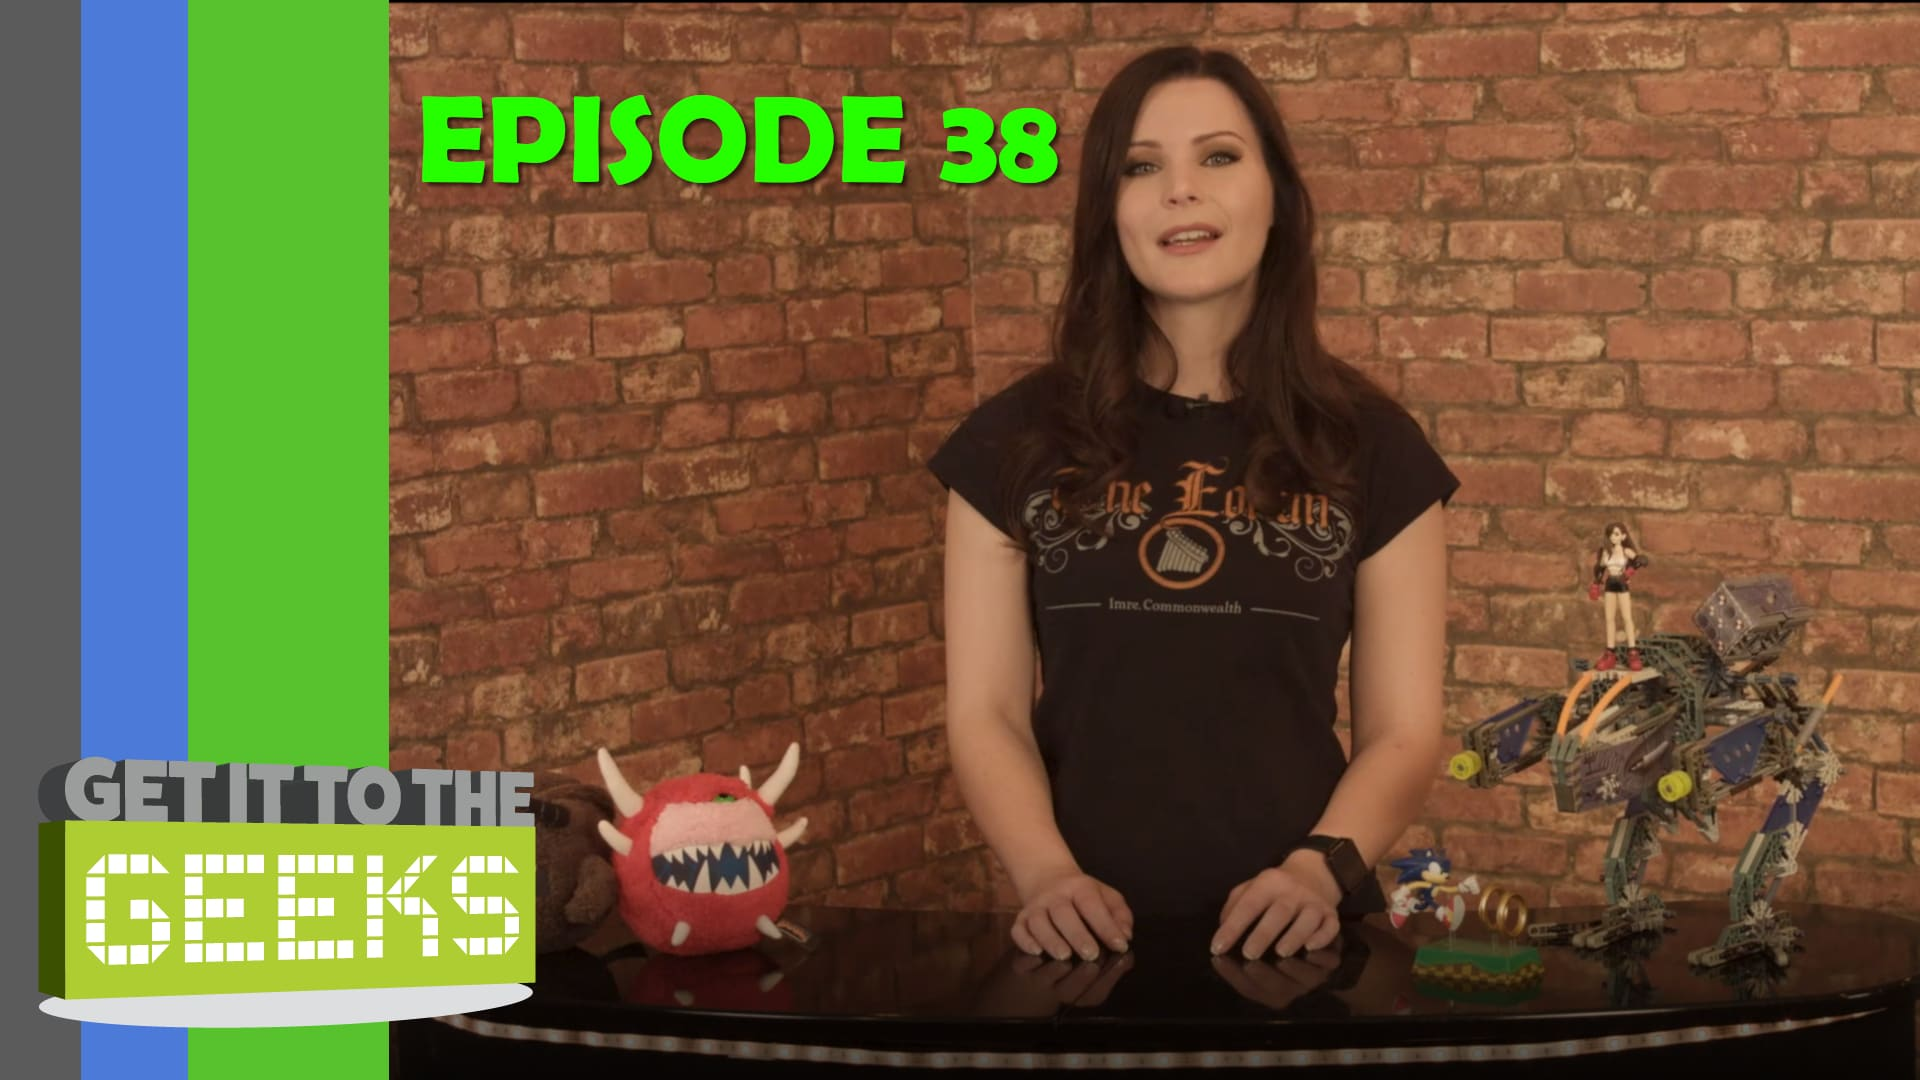 Get It To The Geeks - Episode 38